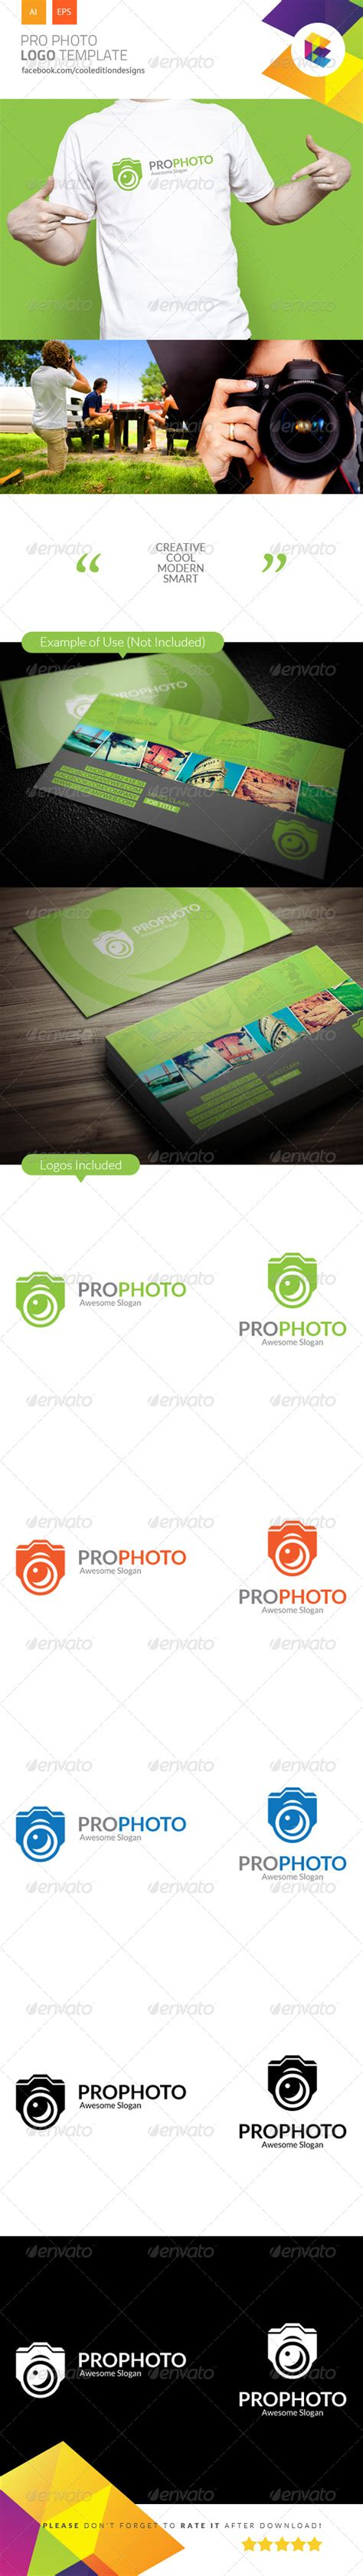 pro photo templates pro photo logo template by cooleditionlogos graphicriver